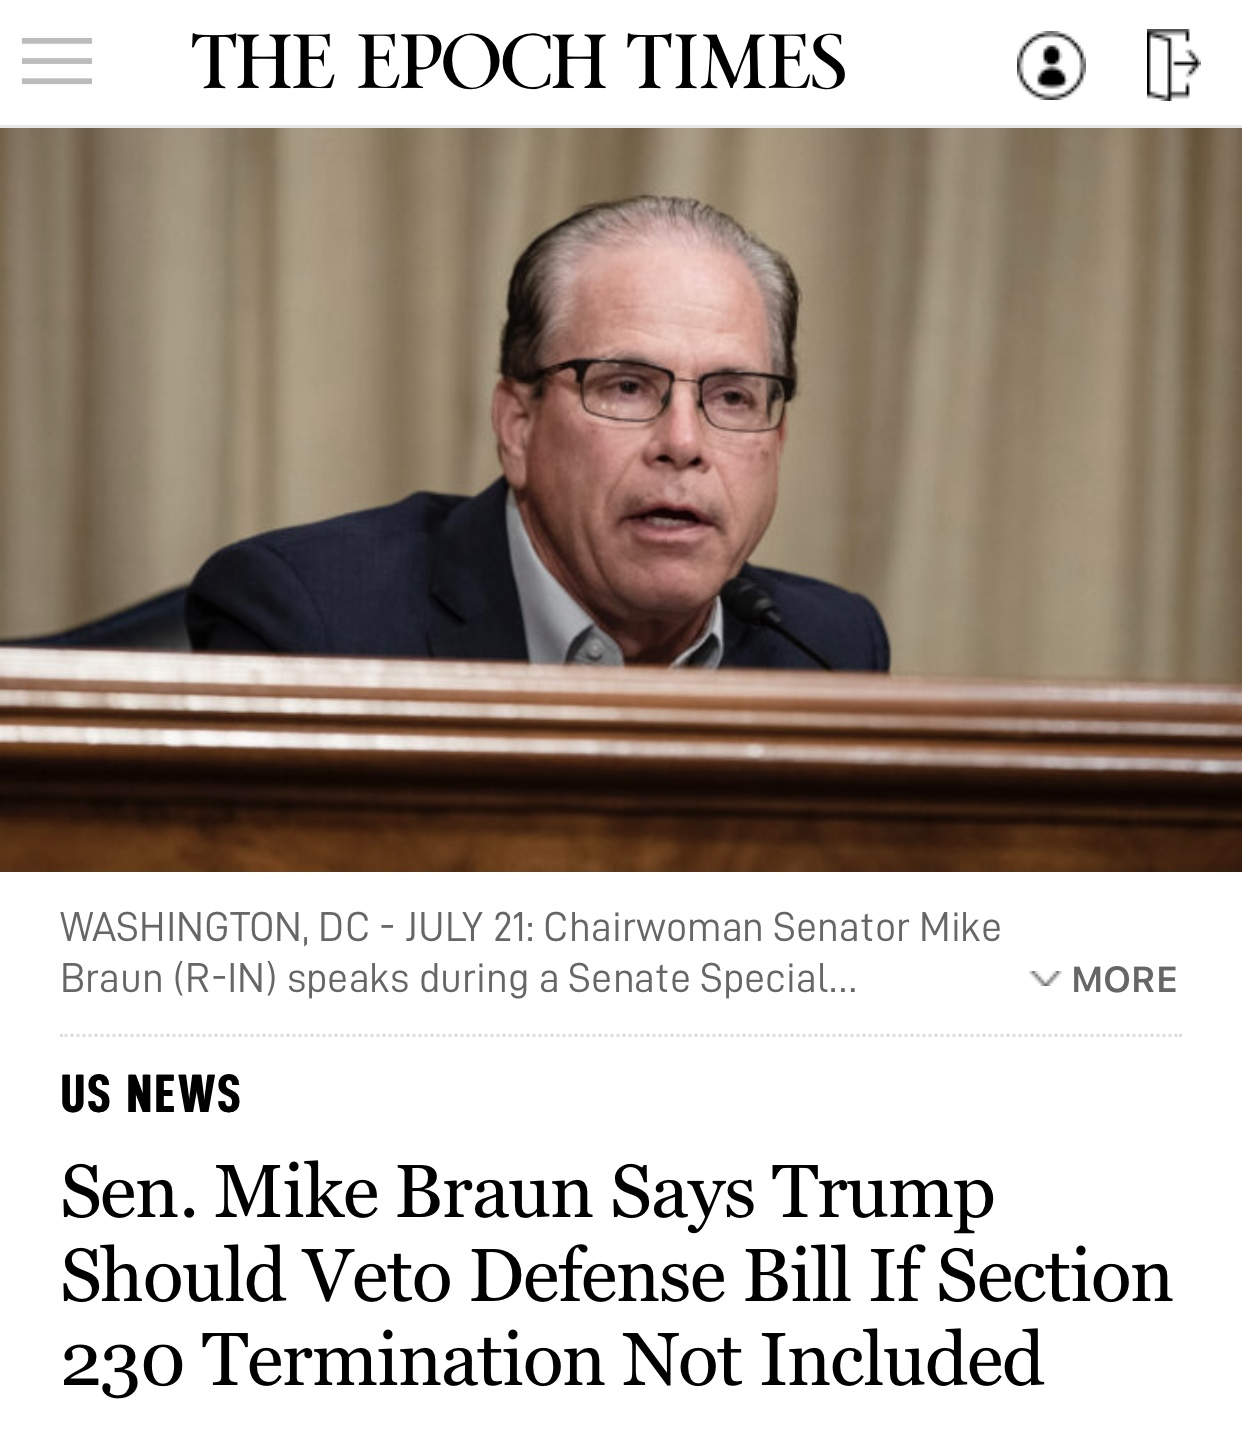 Sen. Mike Braun Says Trump Should Veto Defense Bill If Section 230 Termination Not Included